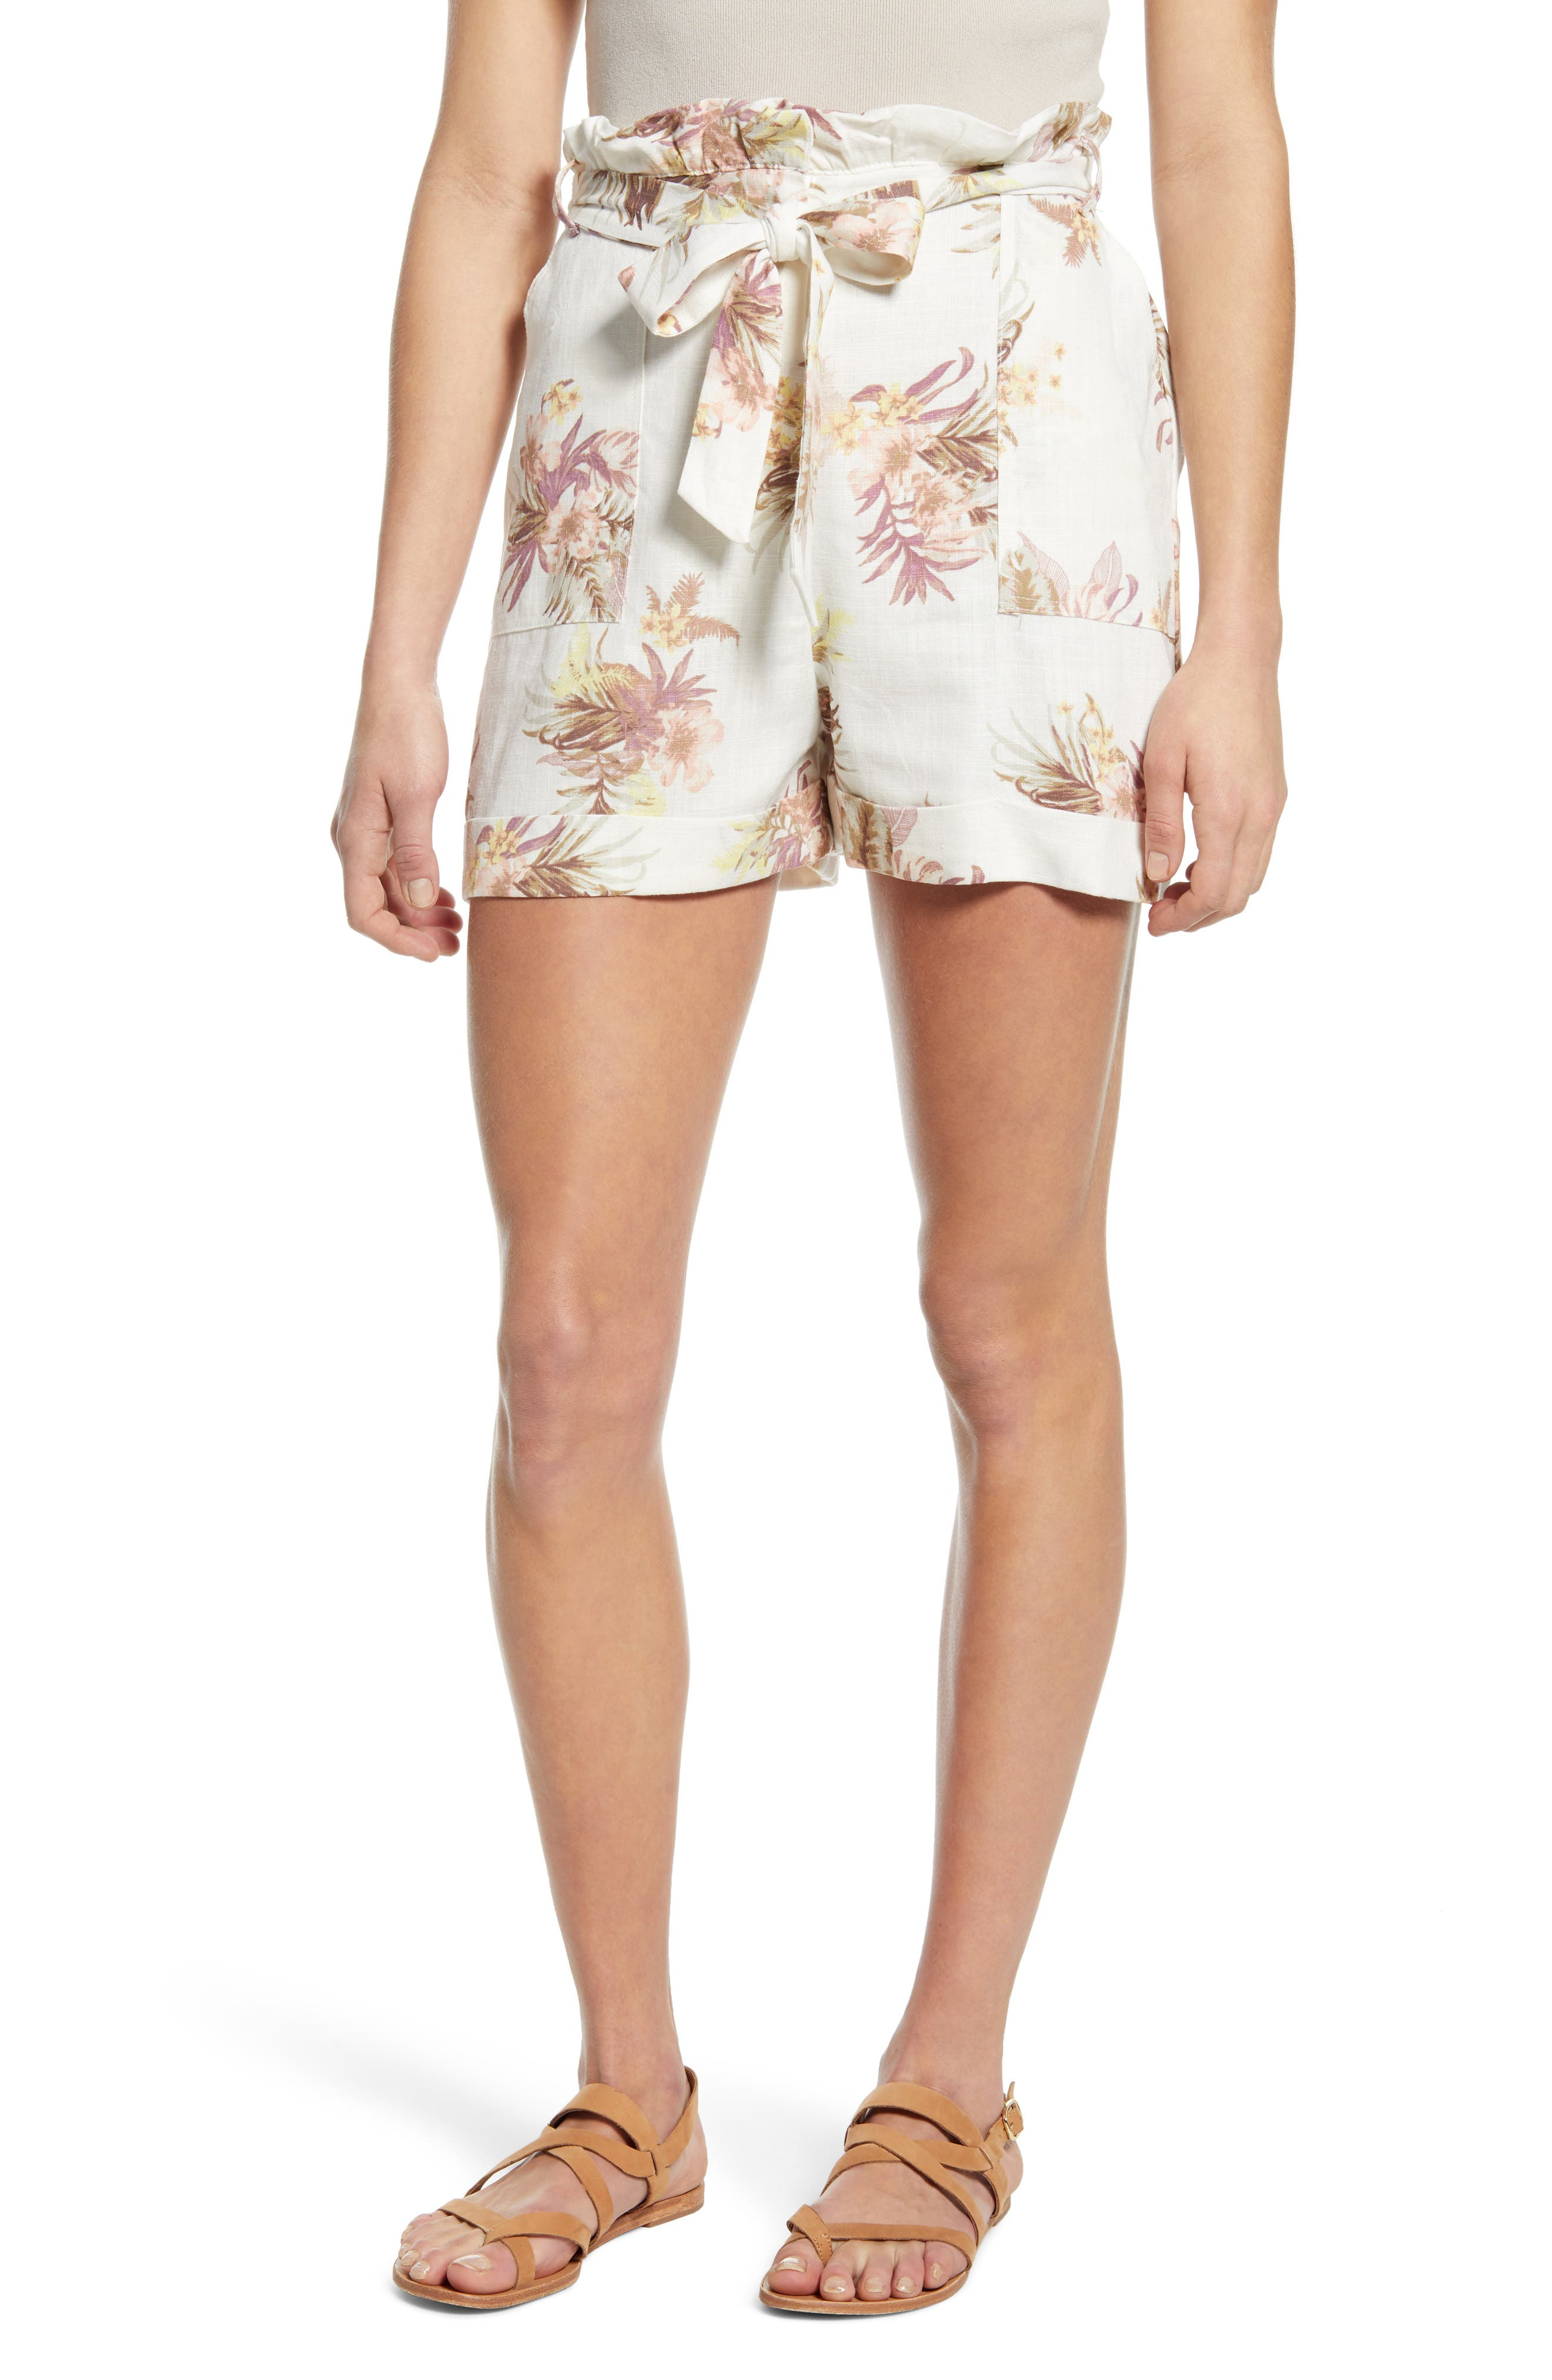 Women's Minkpink Tropic Dreaming Shorts,  Medium - White